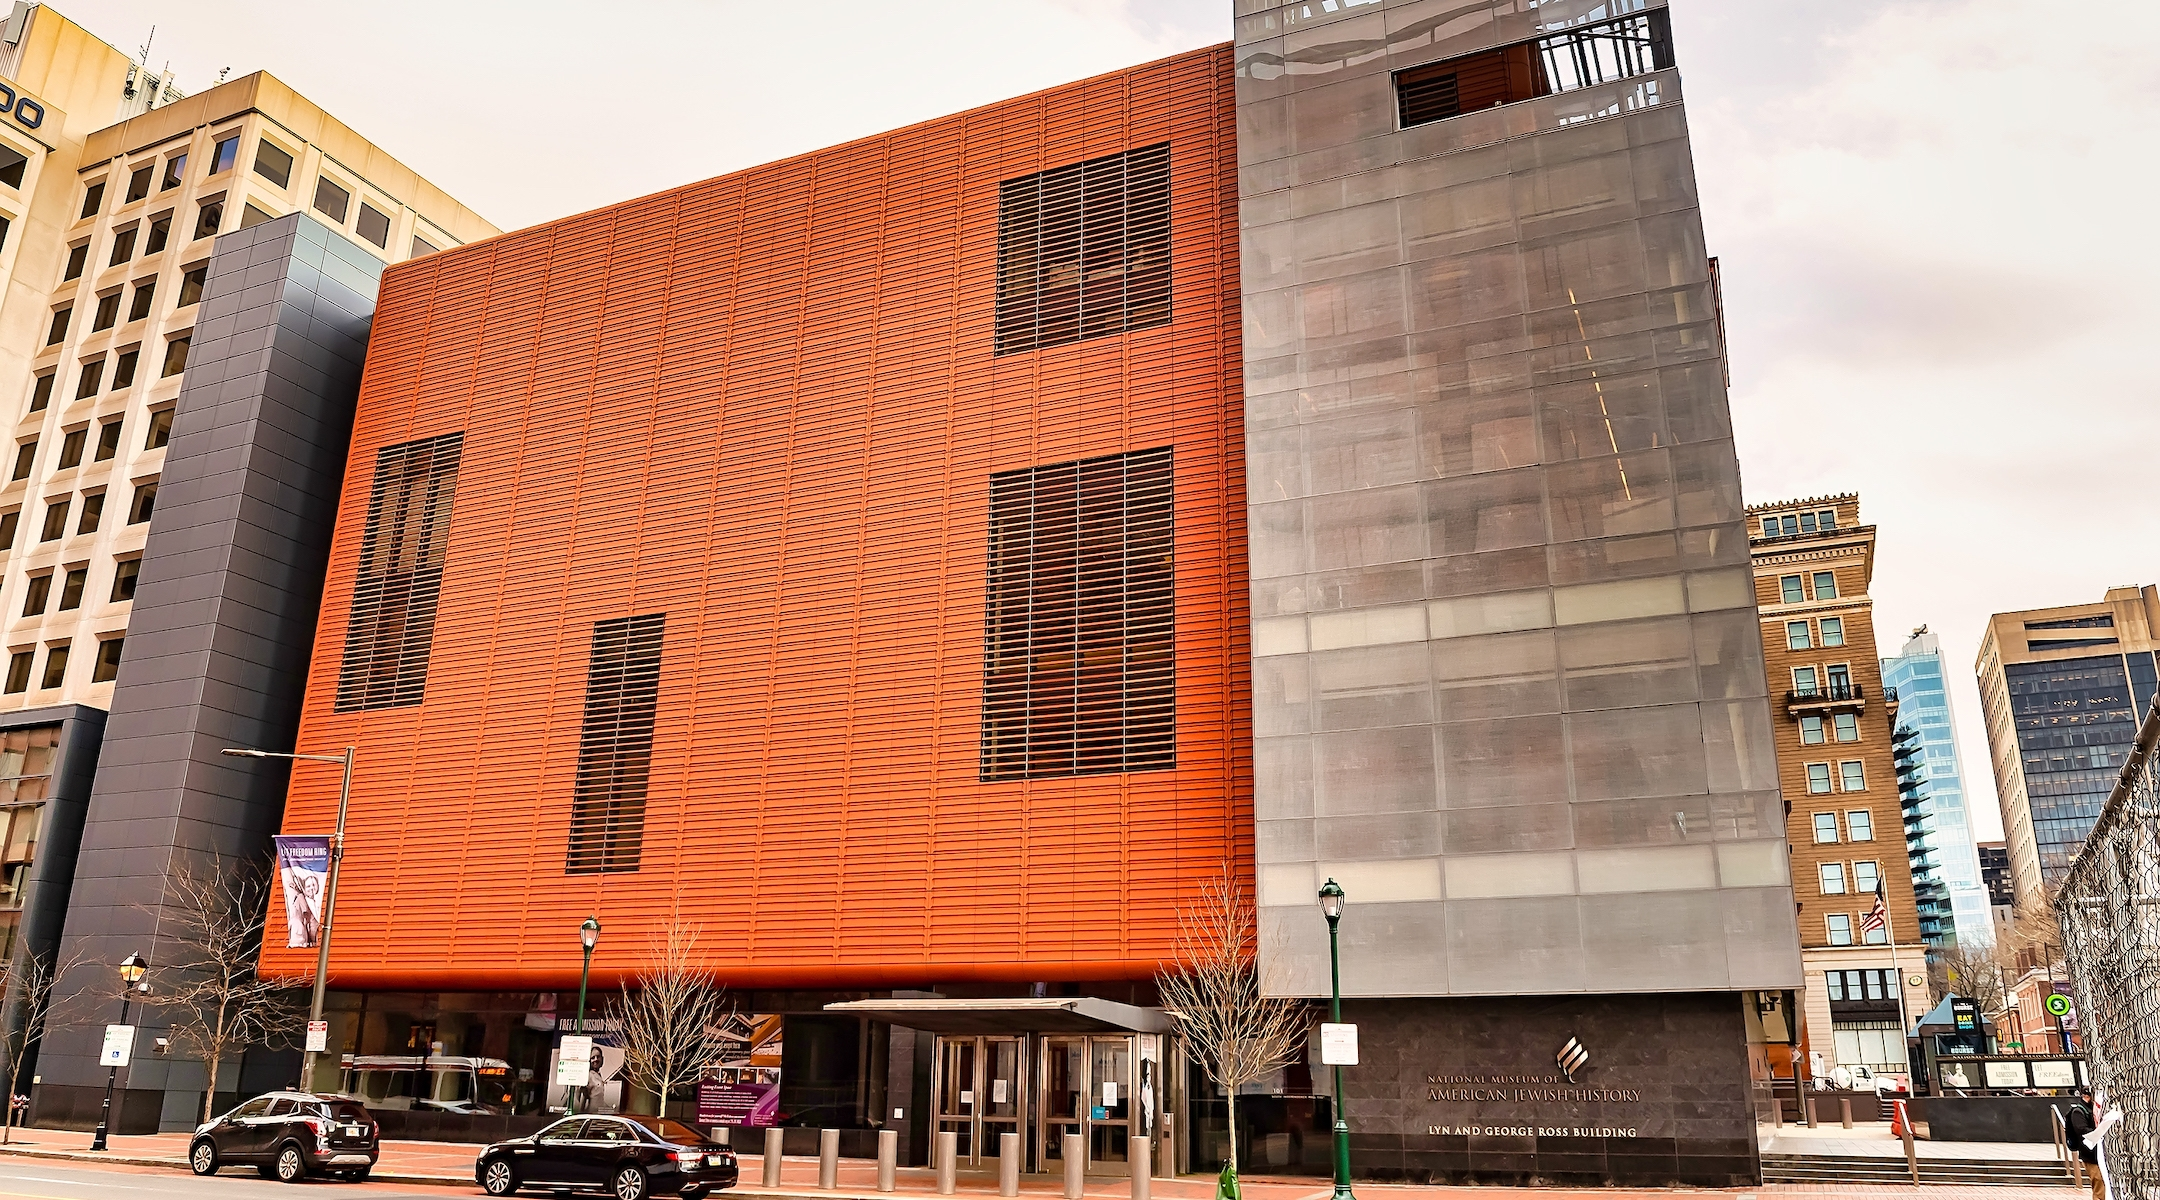 National Museum of American Jewish History emerges from bankruptcy